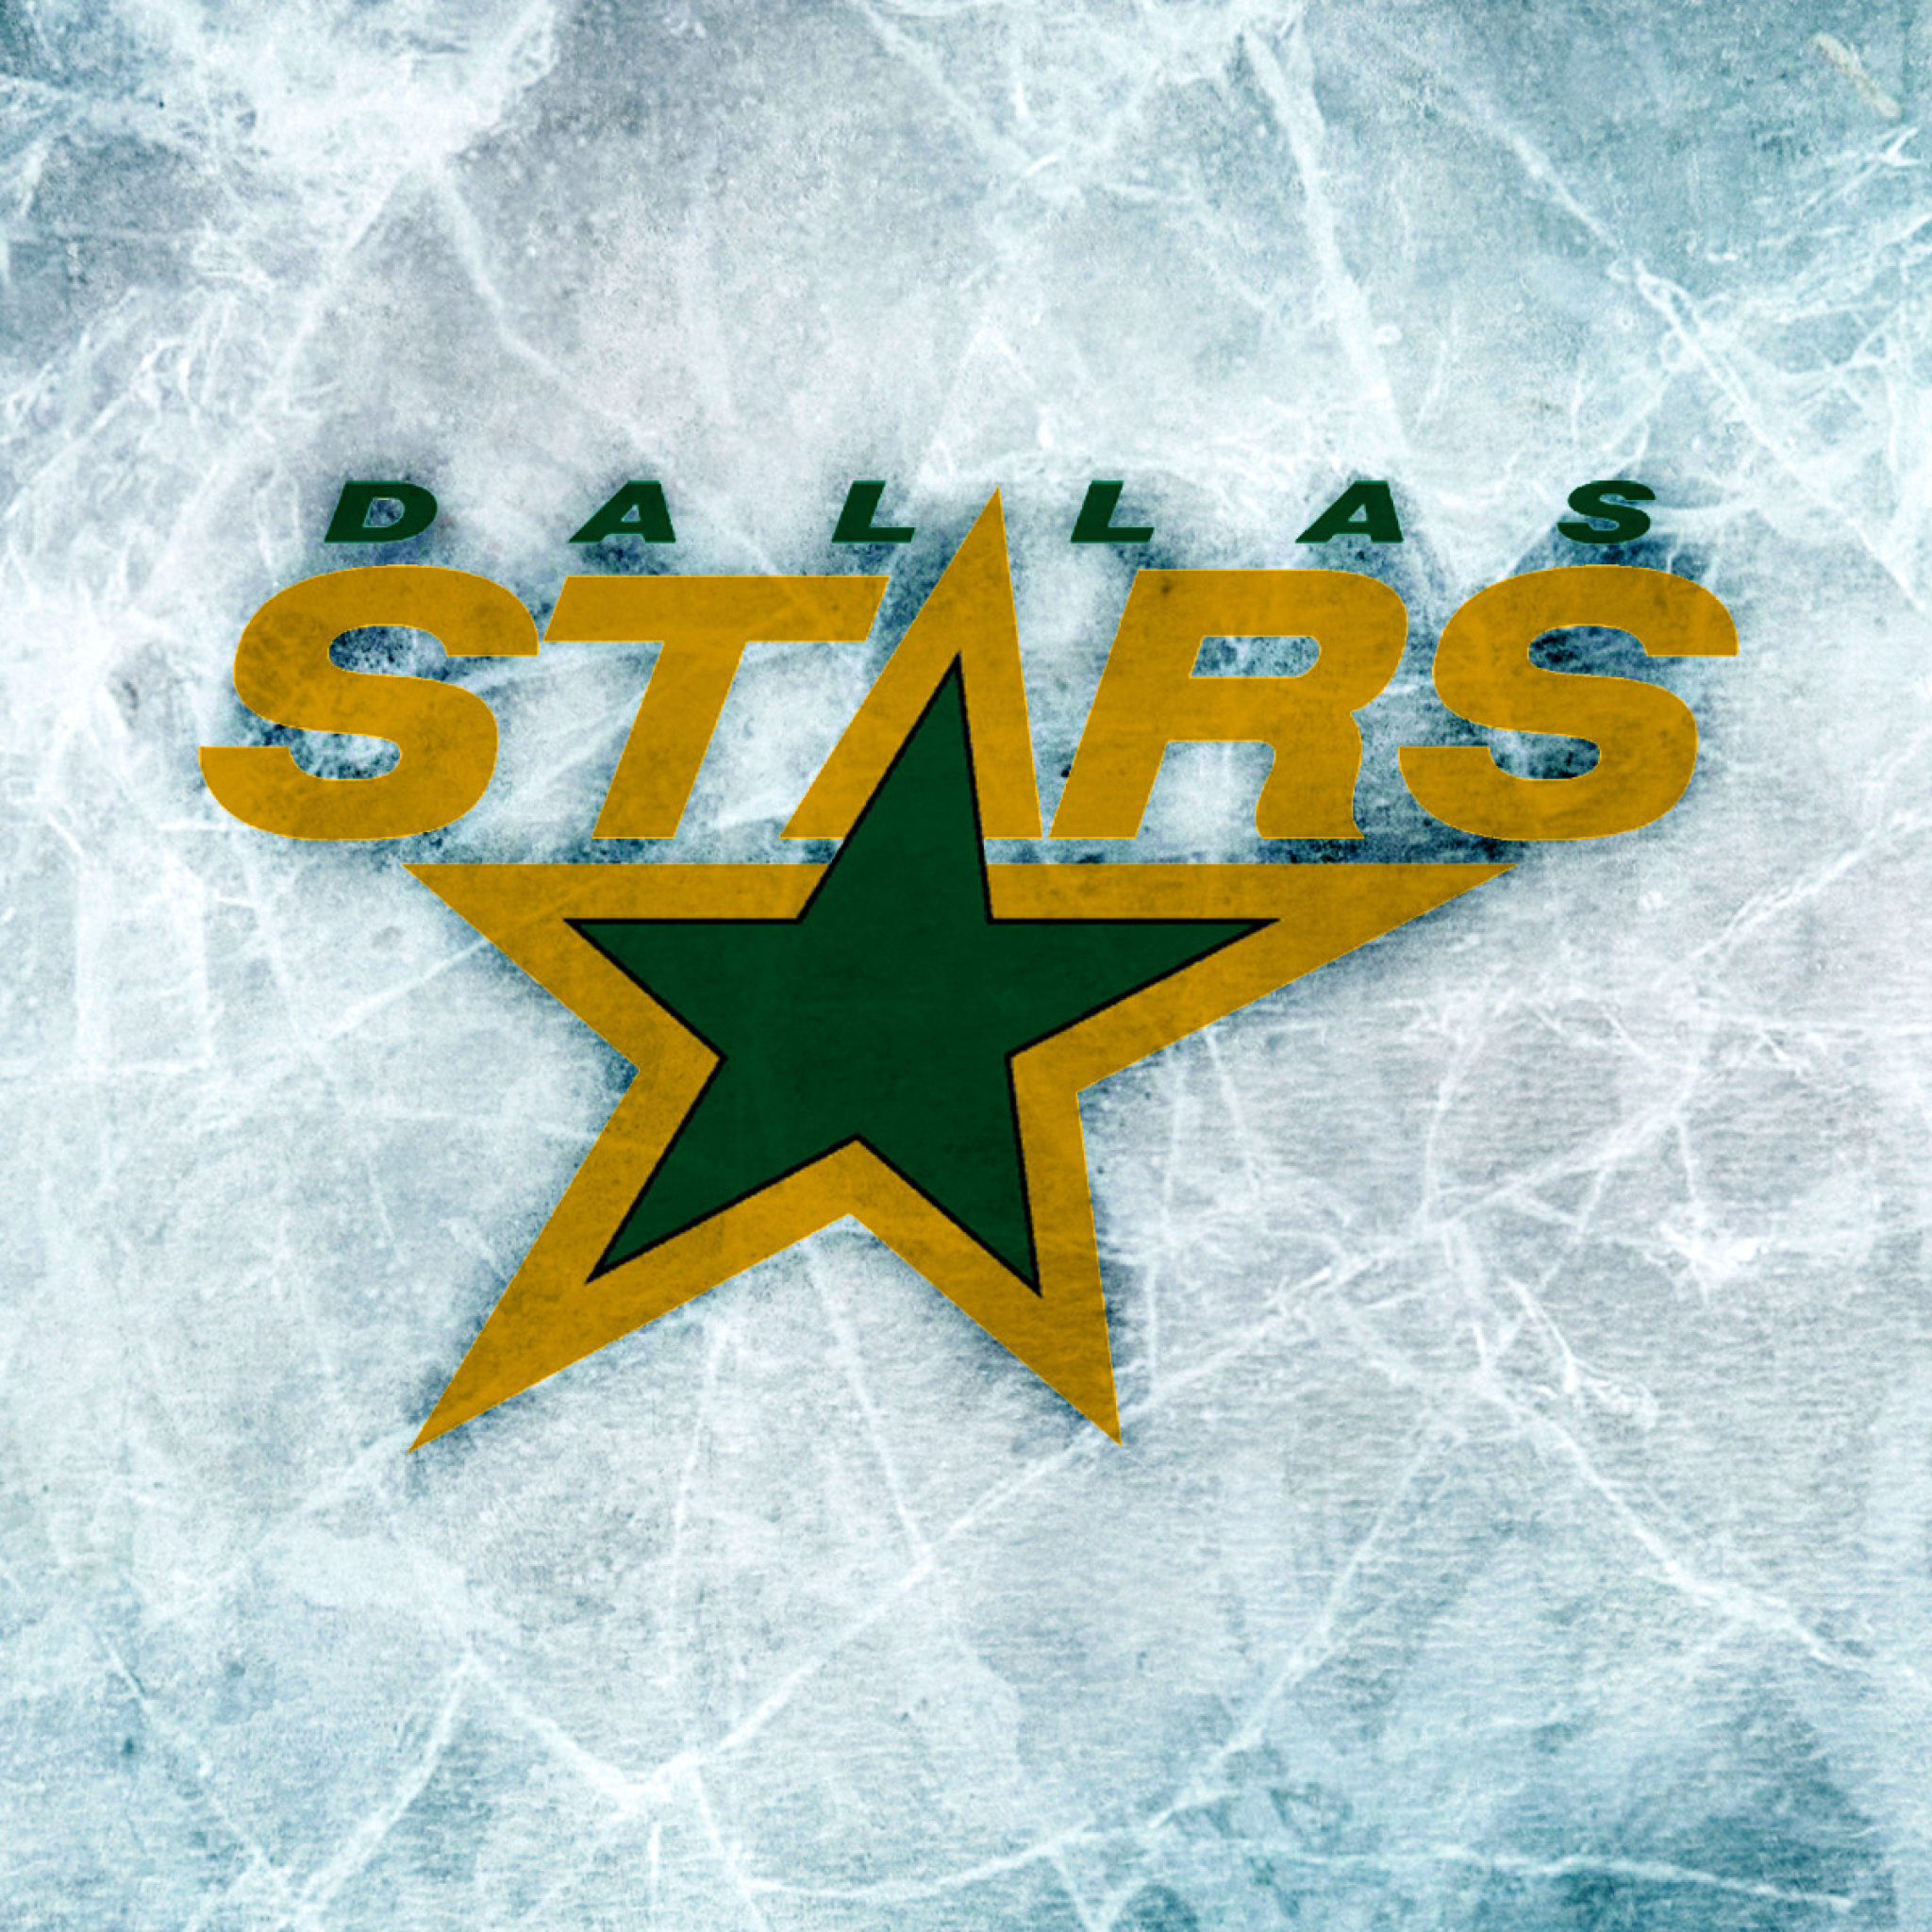 Dallas Stars screenshot #1 2048x2048